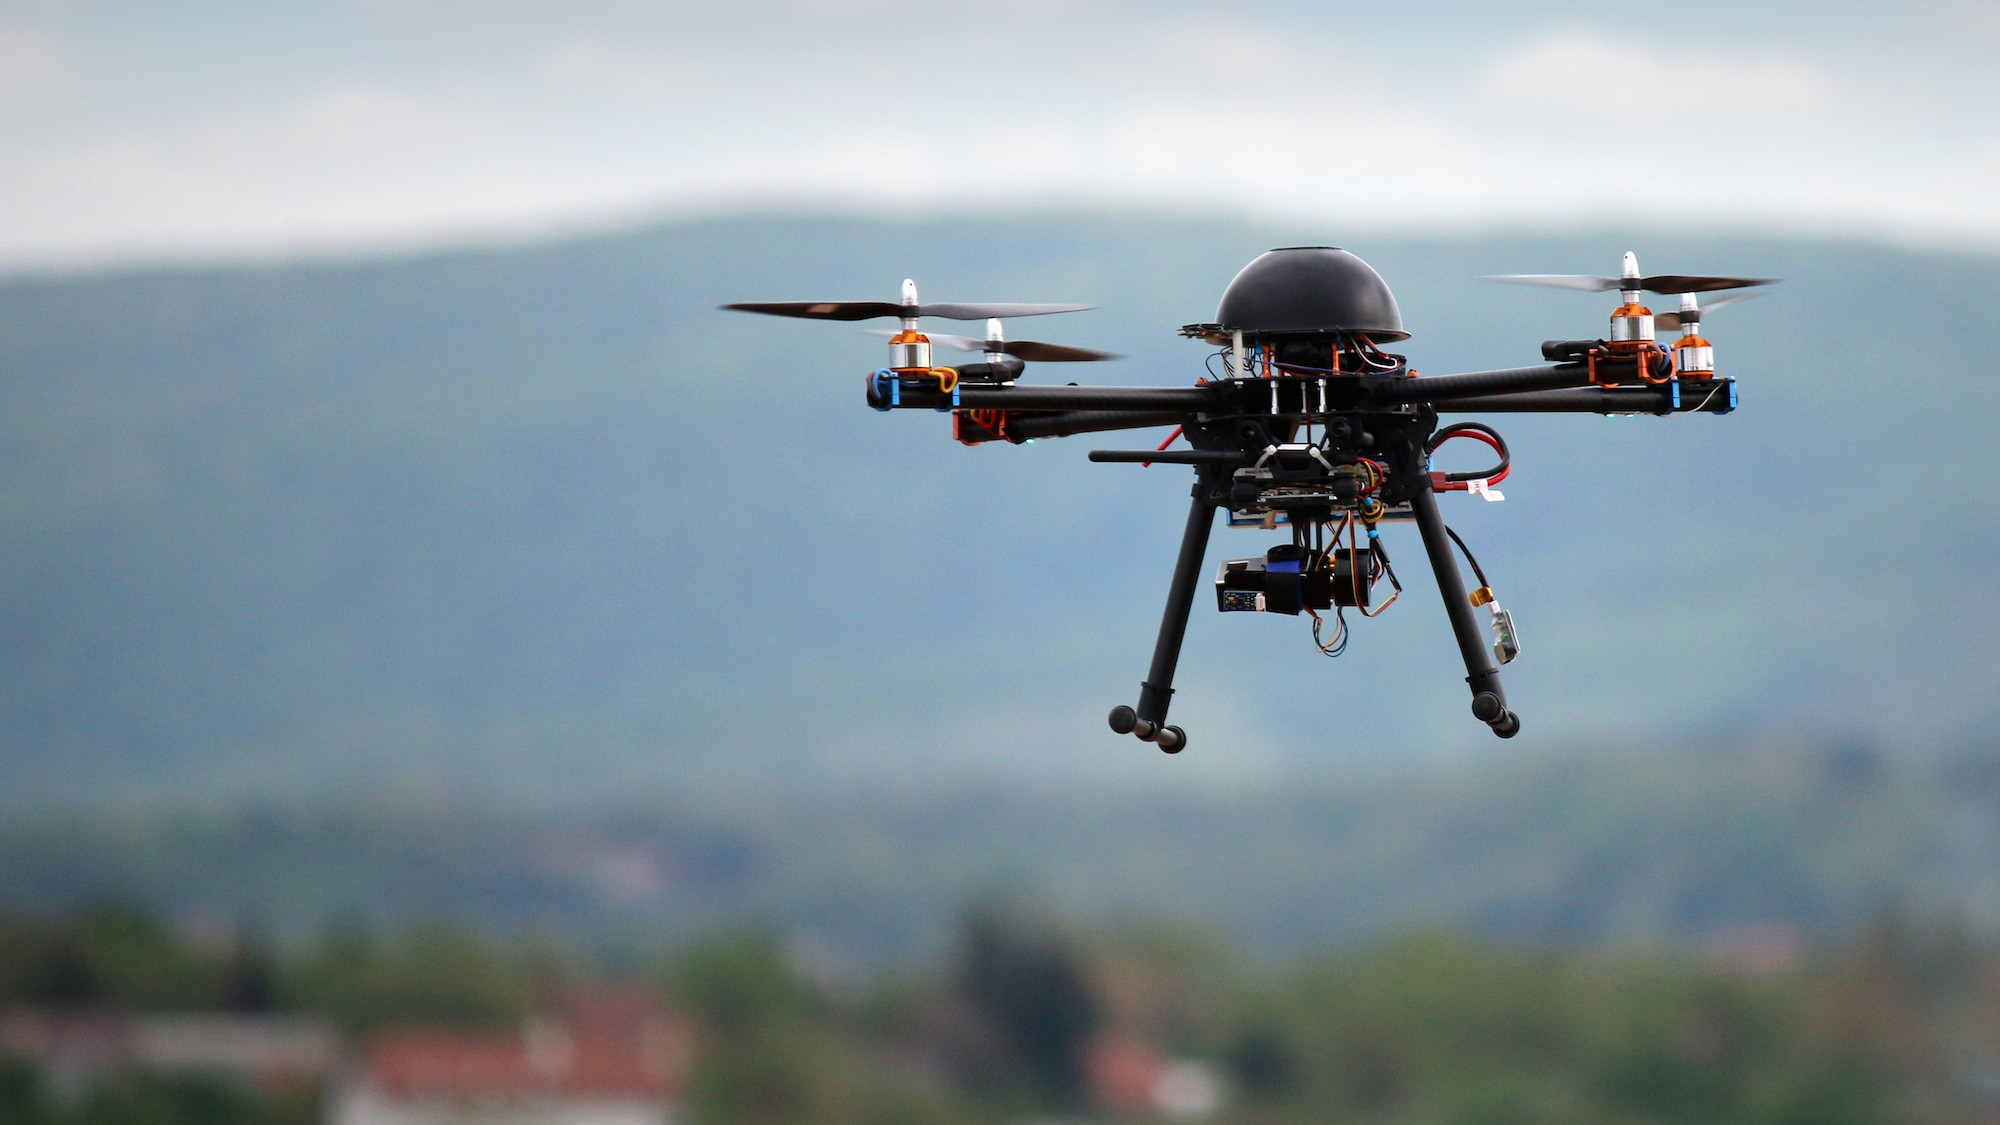 Drone Licence Plates? The UK Explores Regulations for Privacy